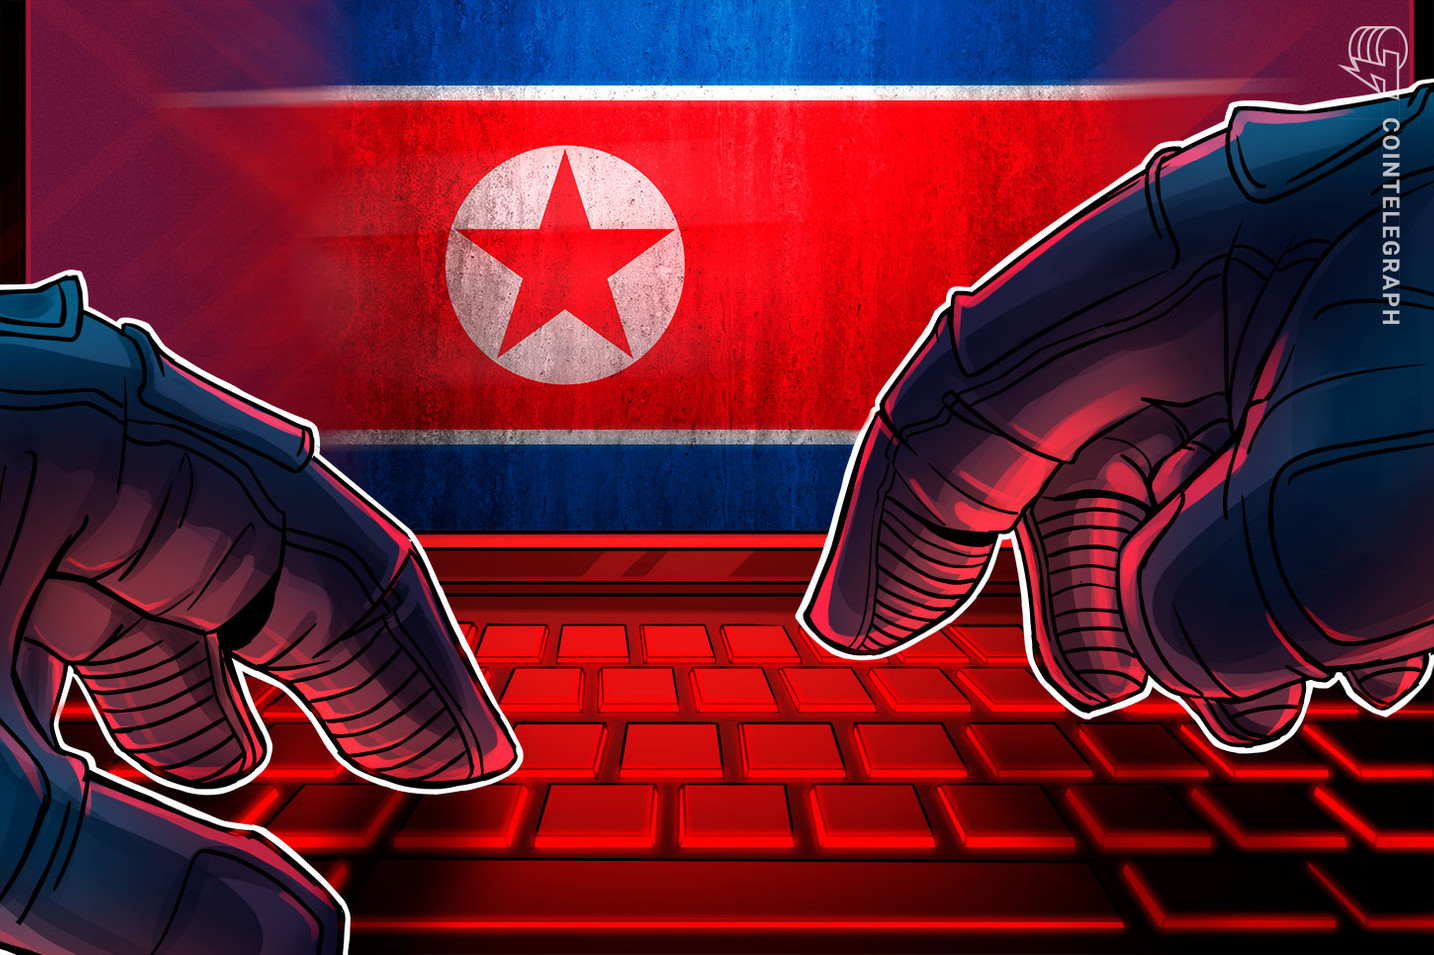 U.S.  charges three North Korean hackers over crypto attacks and WannaCry ransomware